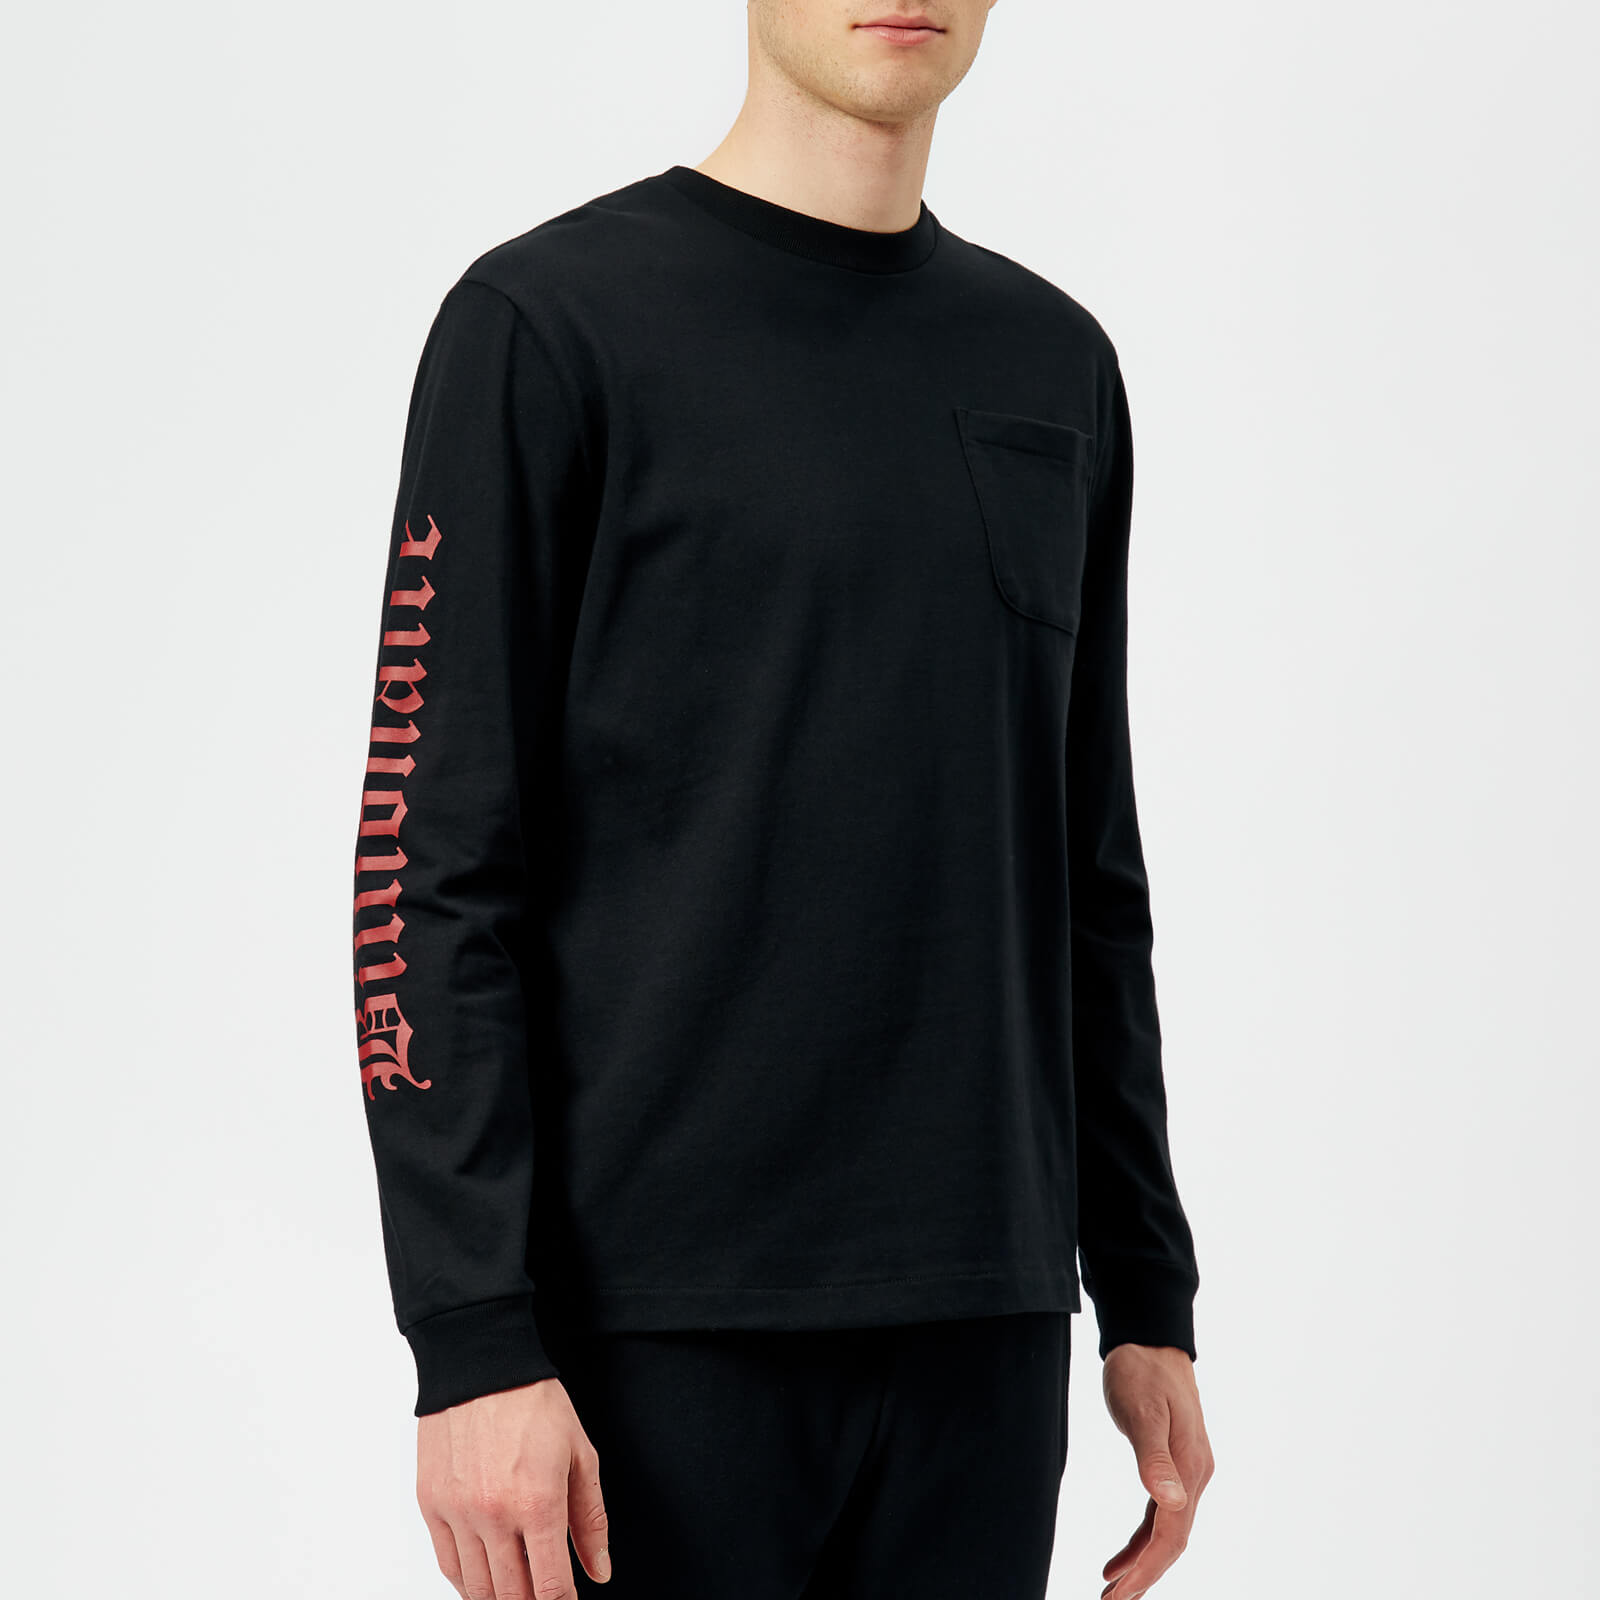 28fc9776 Billionaire Boys Club Men's College Long Sleeve T-Shirt - Black - Free UK  Delivery over £50